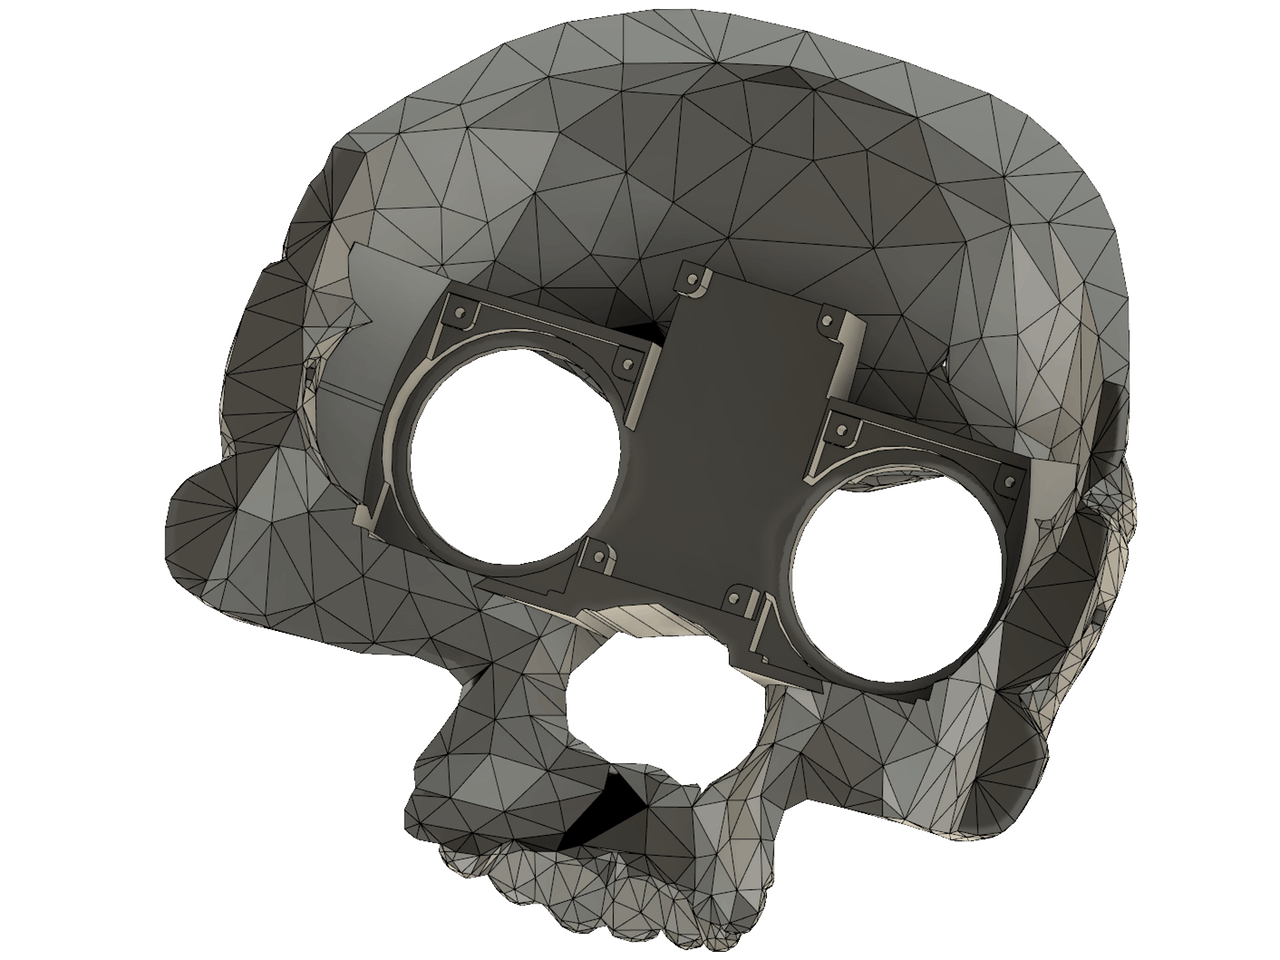 Planar drawing skull. Halloween costume with uncanny